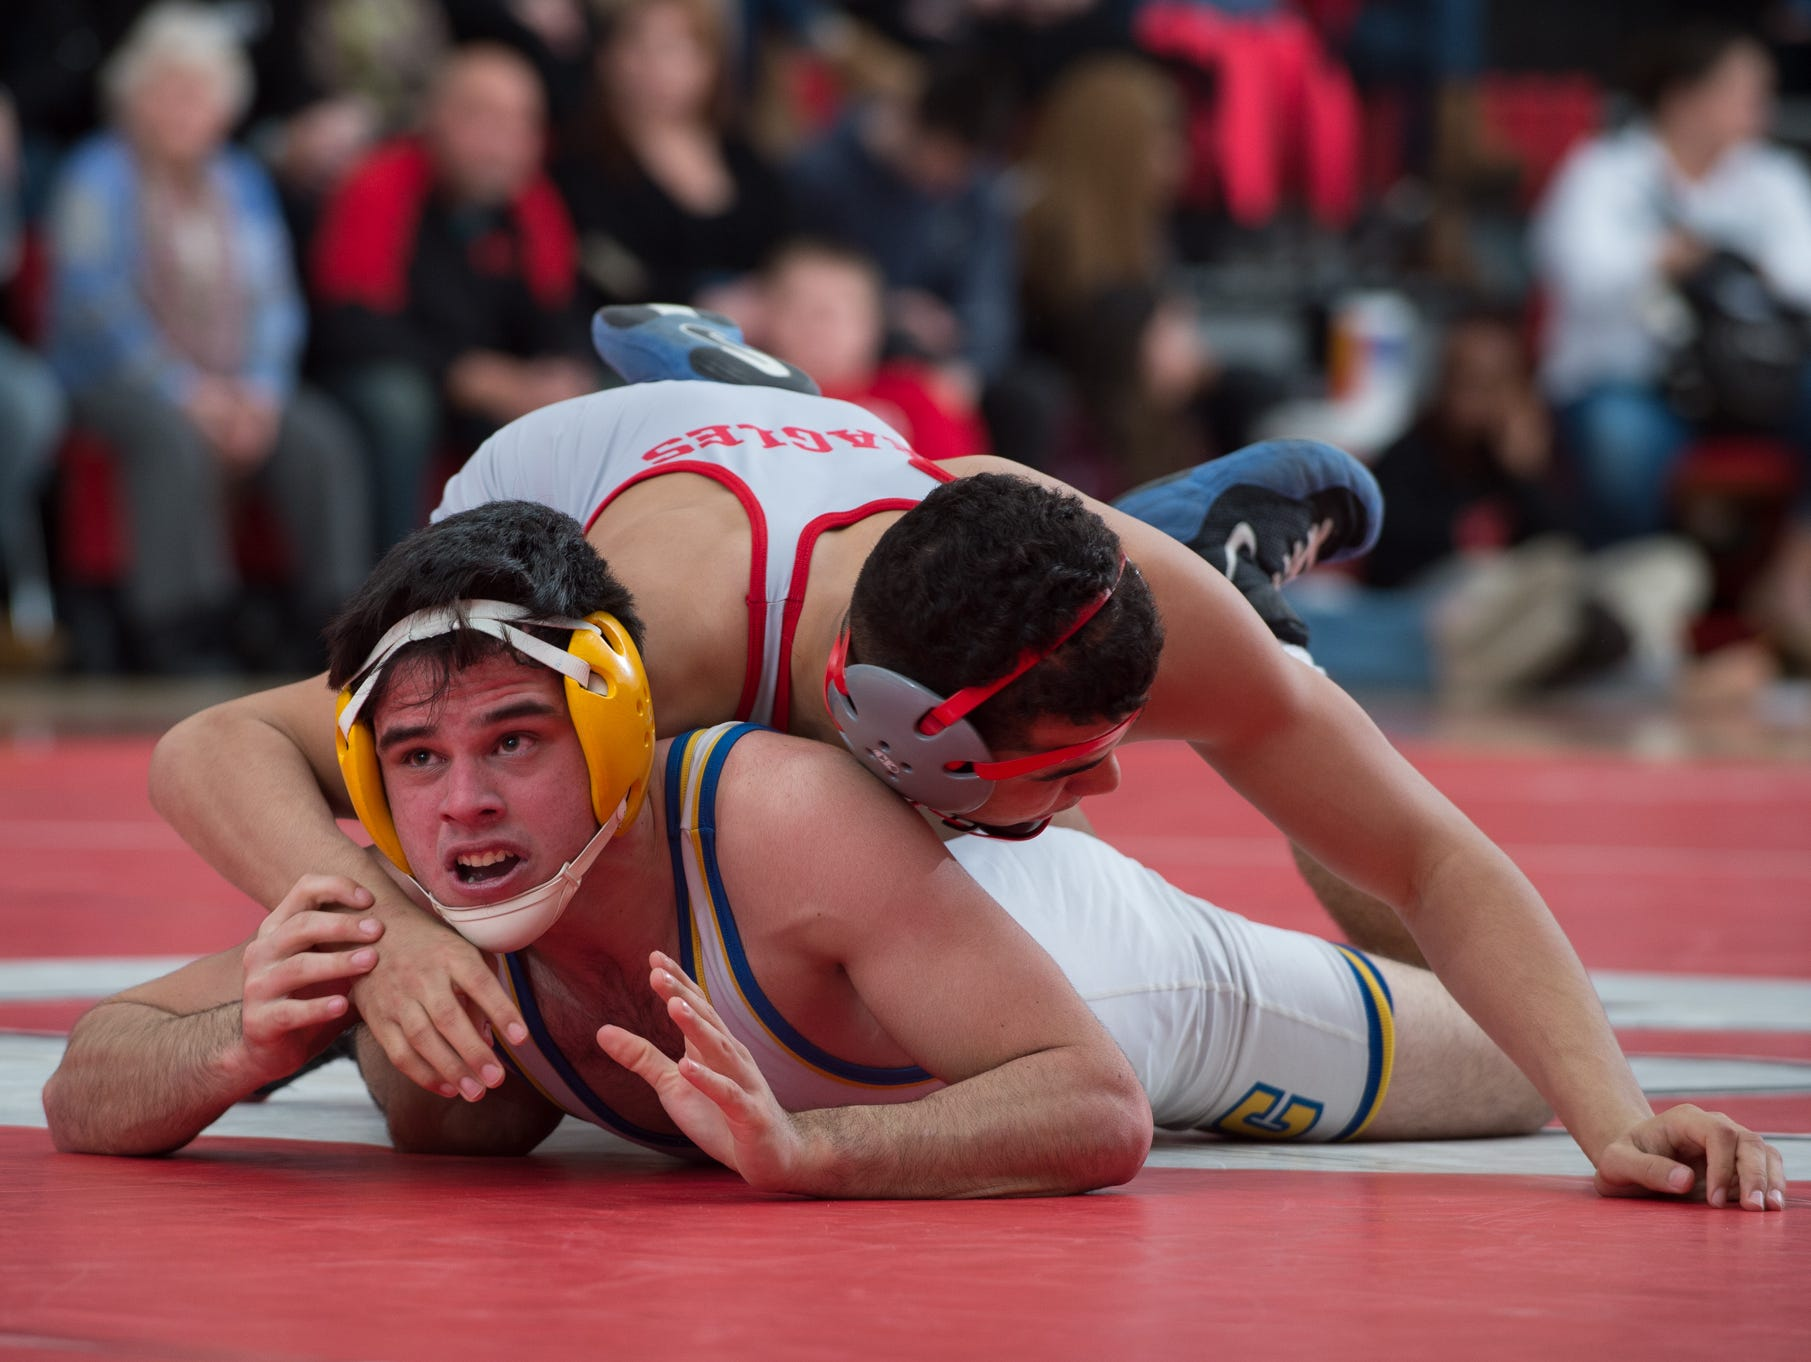 Sussex Central's Tyler Bunting, left, checks the clock in his match against Smyrna's Nate Bryant at 152 pounds last Friday. Smyrna won 39-27 to clinch the Division I top seed in the DIAA Dual Meet Wrestling Championships.